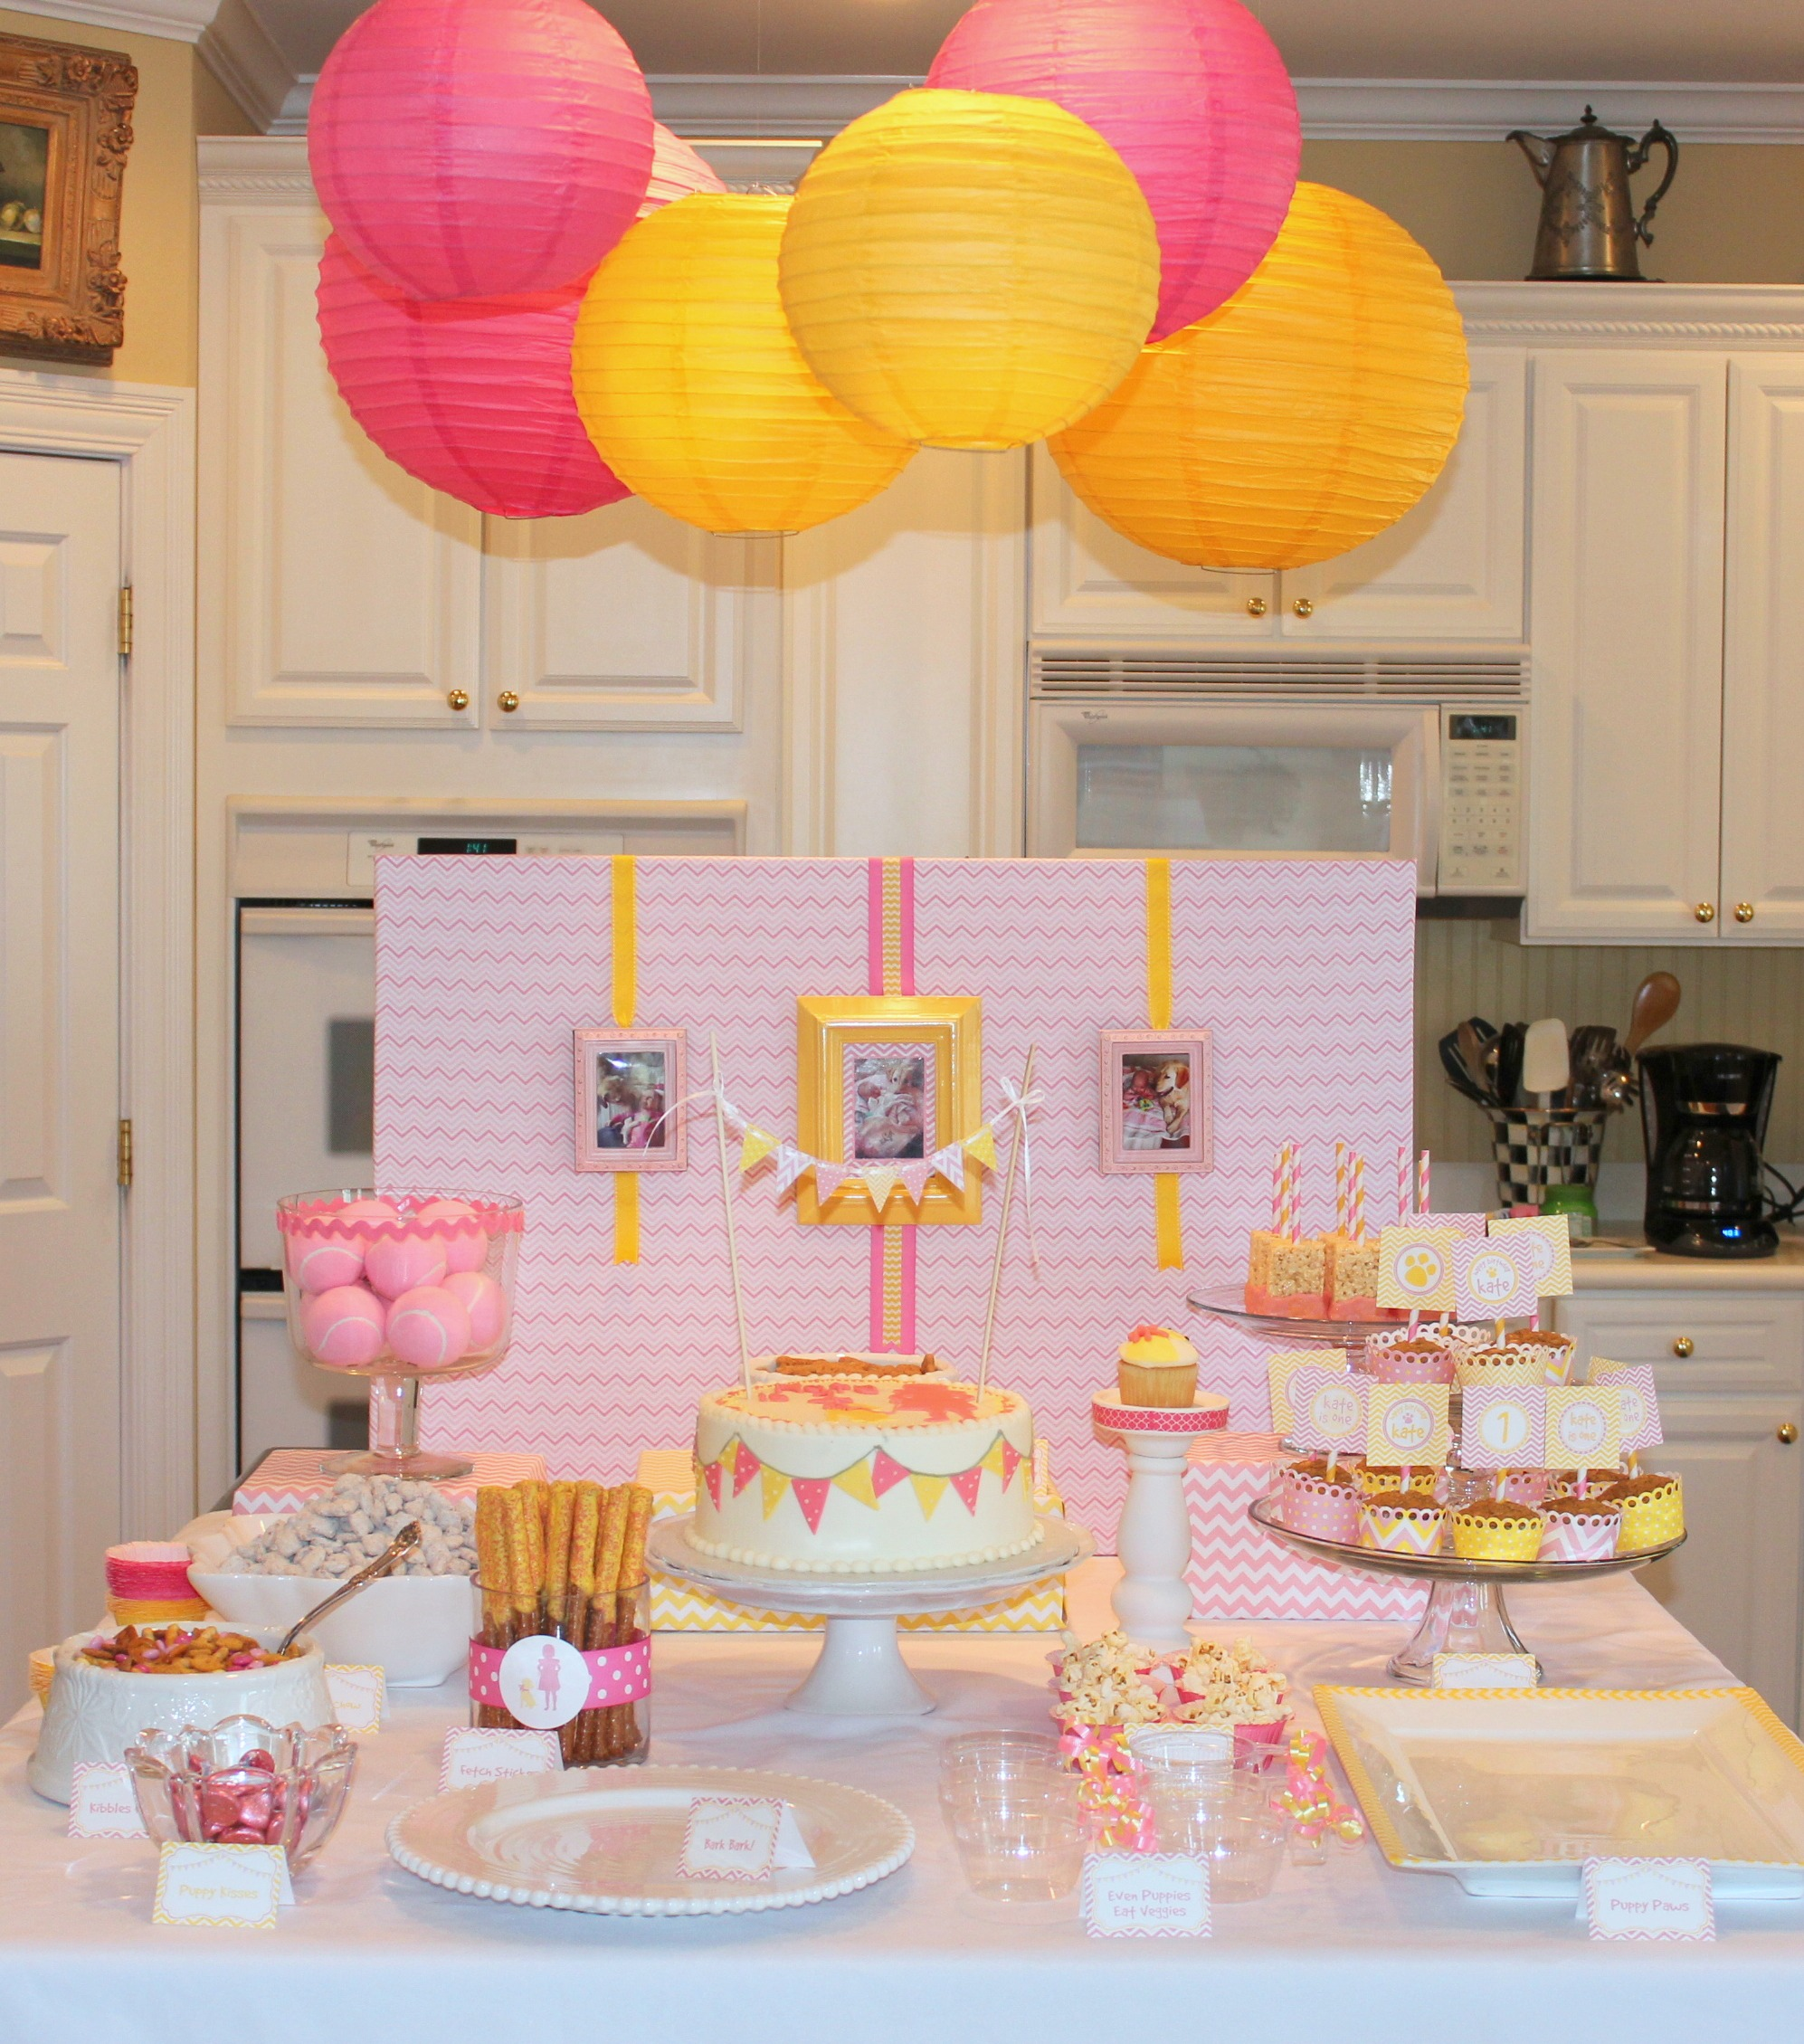 Admirable Pink And Yellow Puppy Party Giggles Galore Funny Birthday Cards Online Ioscodamsfinfo